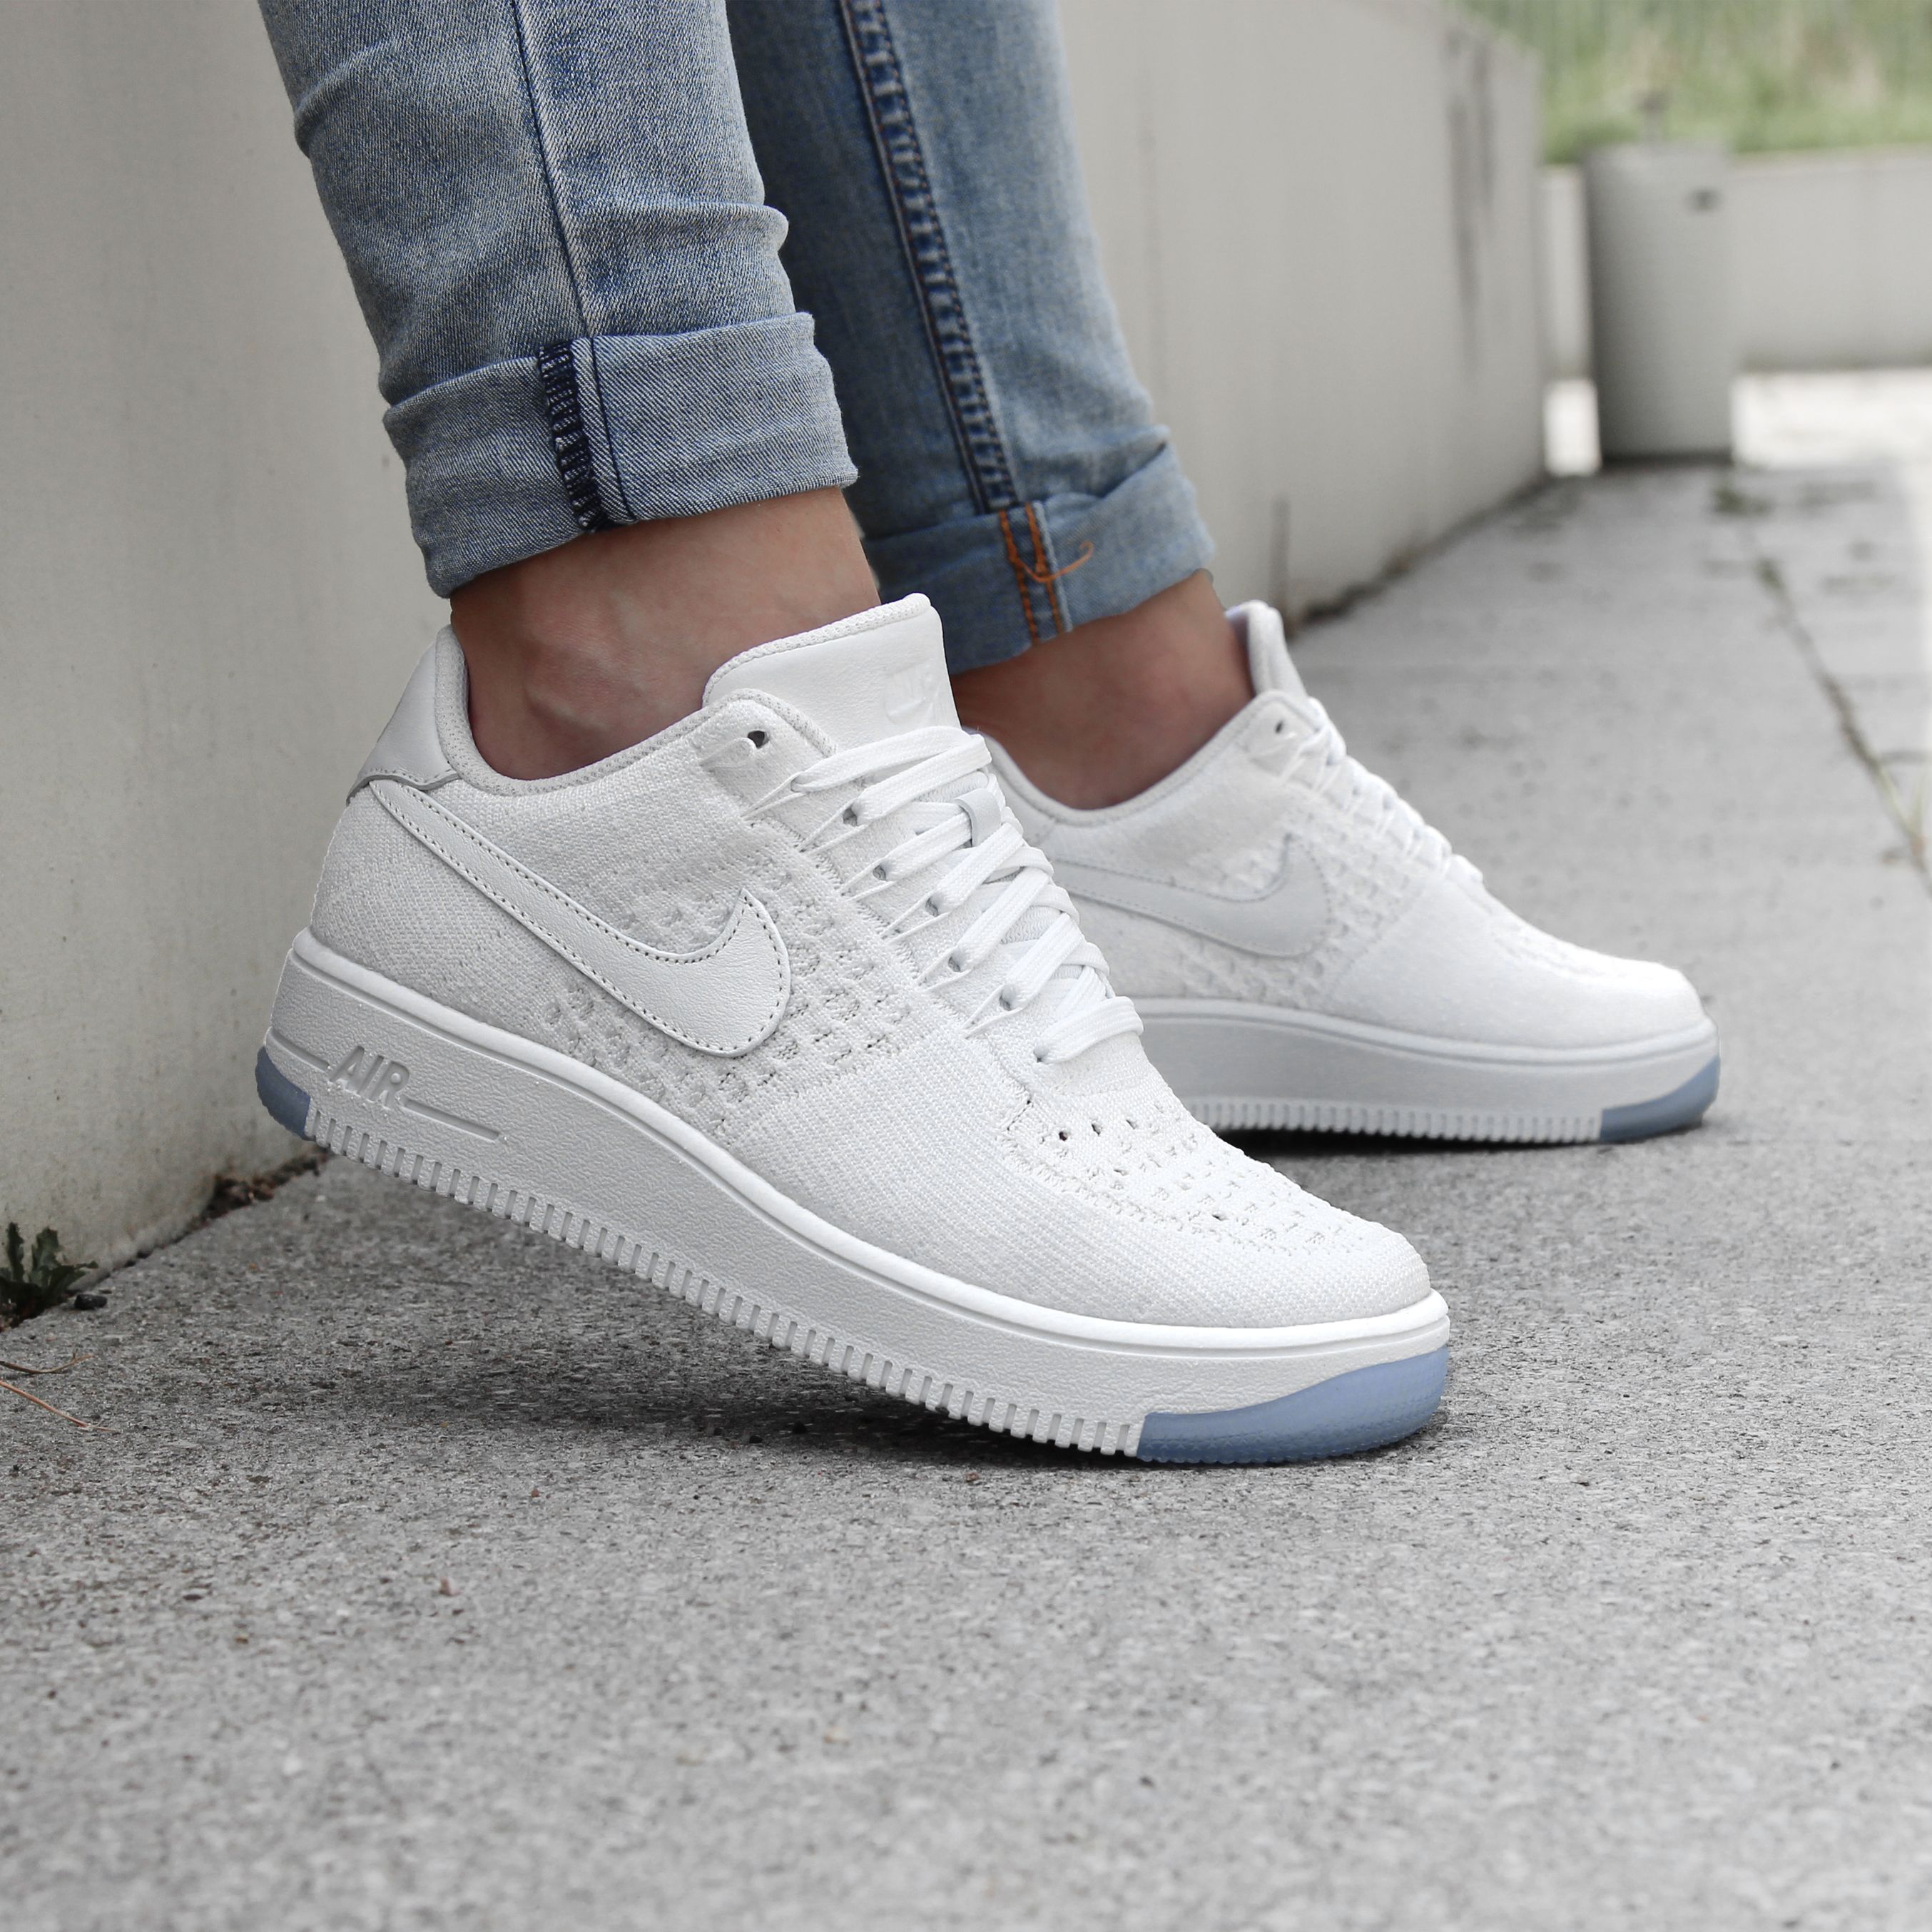 Pin By Chrissy Dulkis On Nikes Sneakers Kicks Shoes